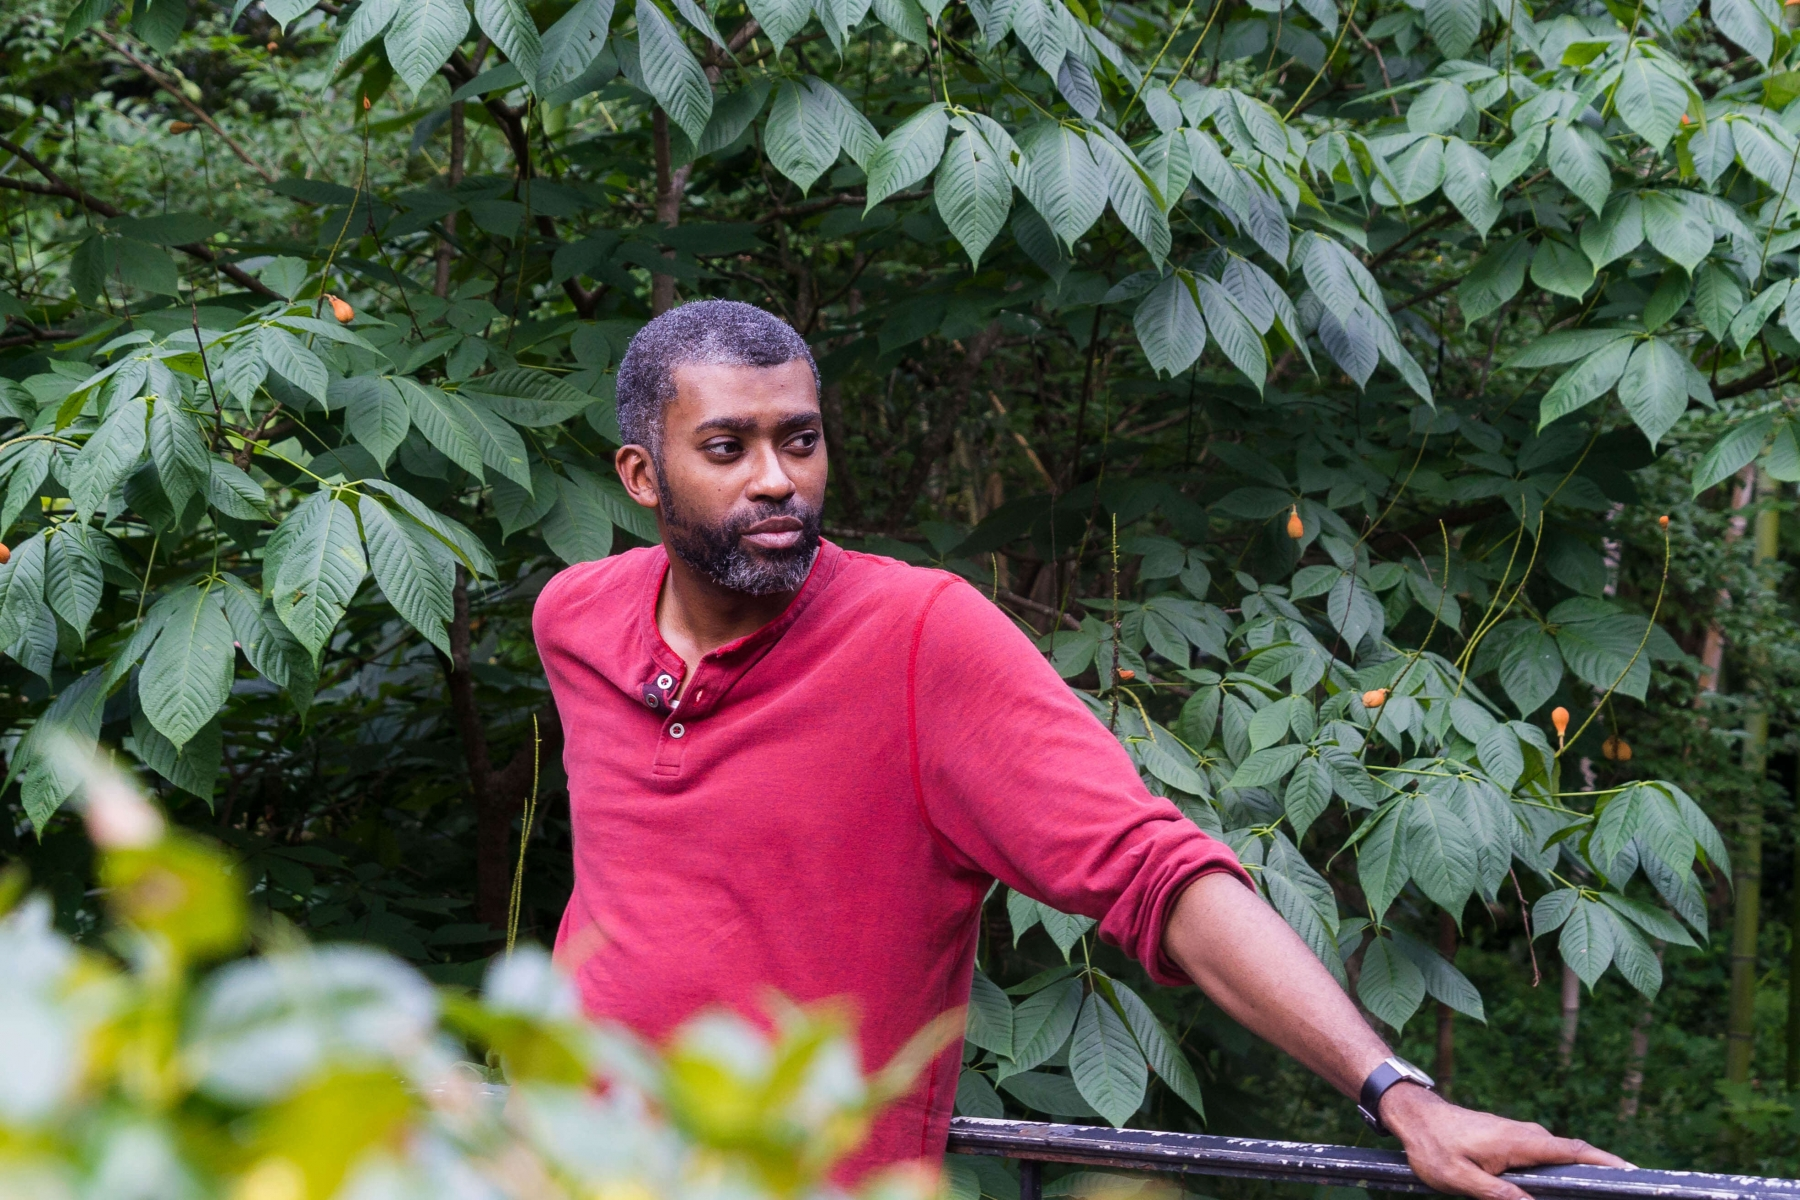 Black-Gentleman-in-Outdoor-Photo-Session-Cantor-Woods-At-first-Sight-by-JM